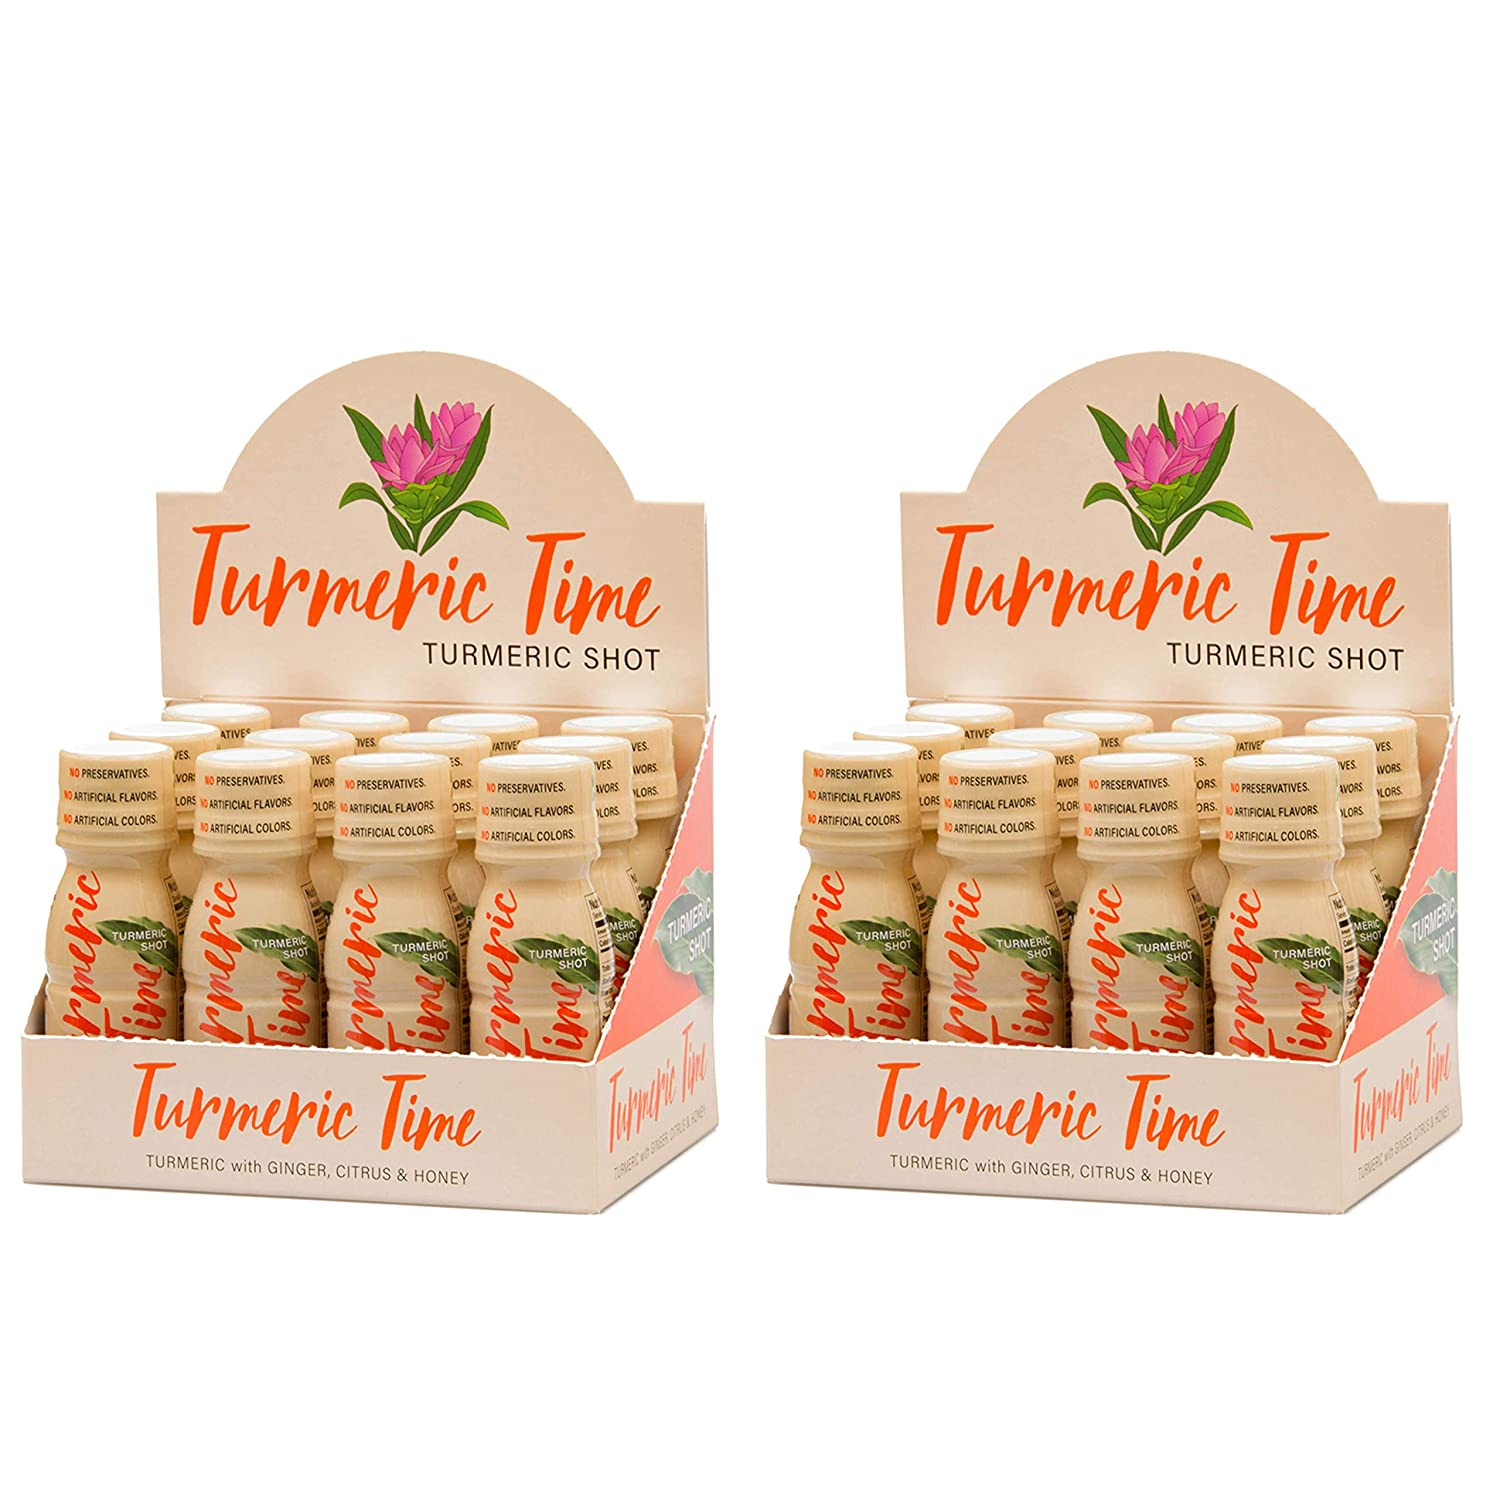 Turmeric Time Turmeric Shots – Turmeric with Ginger, Citrus Honey Non-GMO No Preservatives or Artificial Flavors Colors Sweeteners B Vitamins Liquid Turmeric 24 Pack